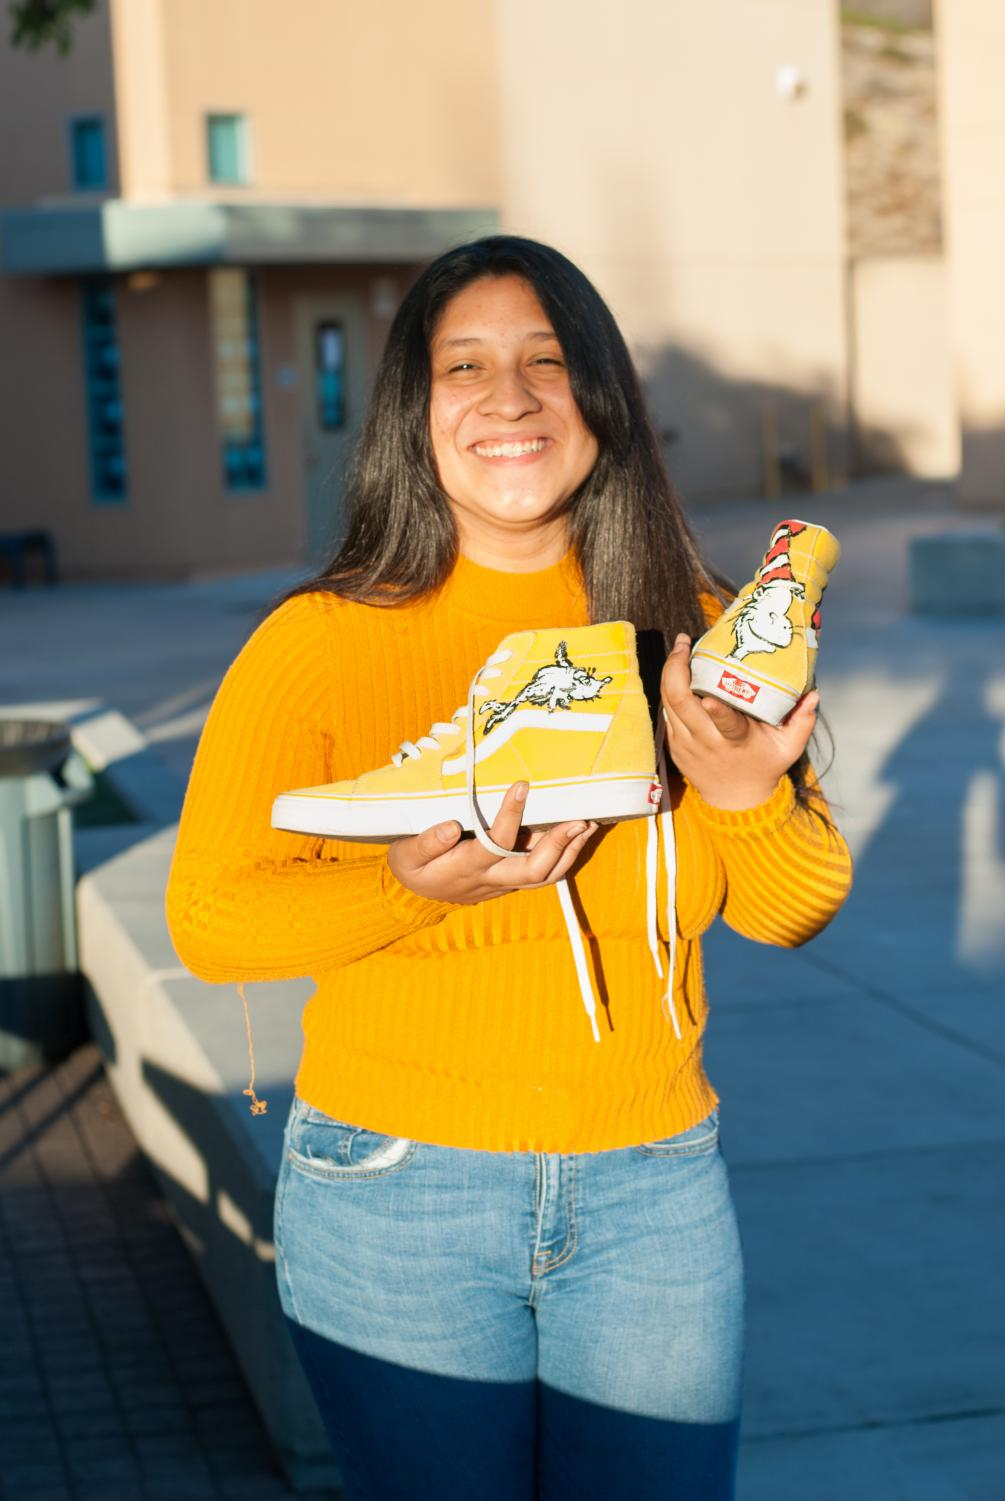 OH, THE PLACES SHE'LL GO: Check out how senior Brianna Vasquez personalized her sneakers by scanning the ZAPPAR logo on the newspaper.